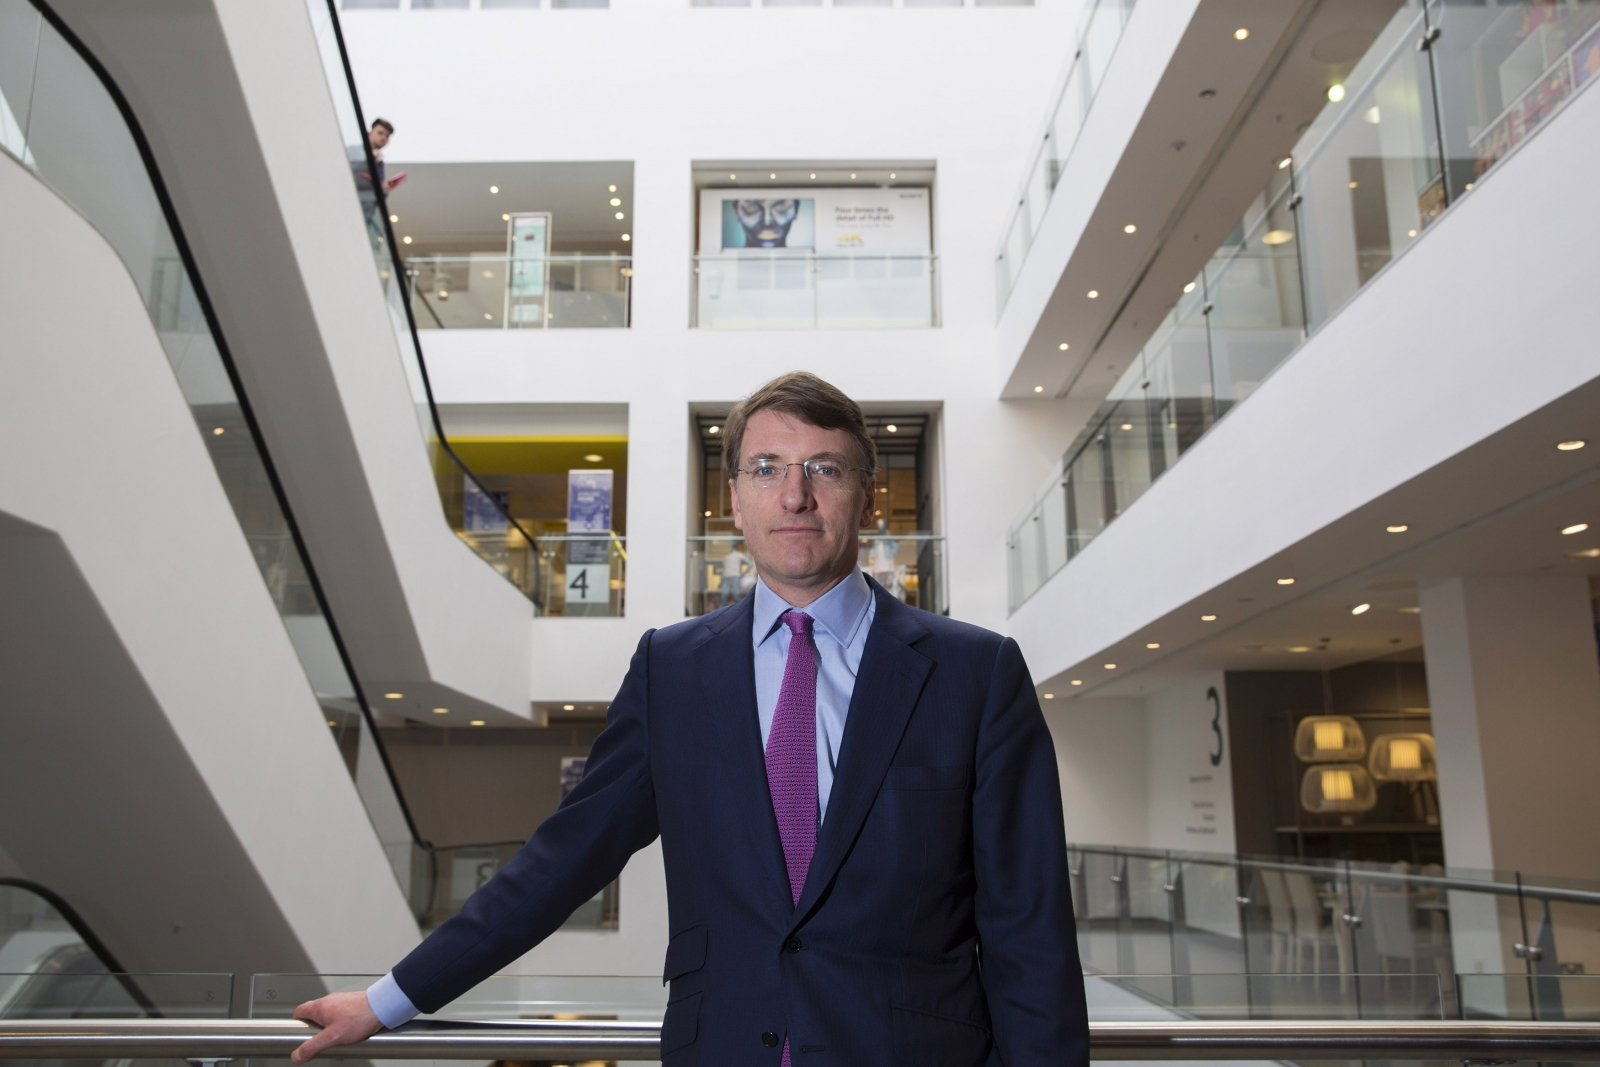 The national living wage introduced in April could spur stronger economic growth, John Lewis boss says